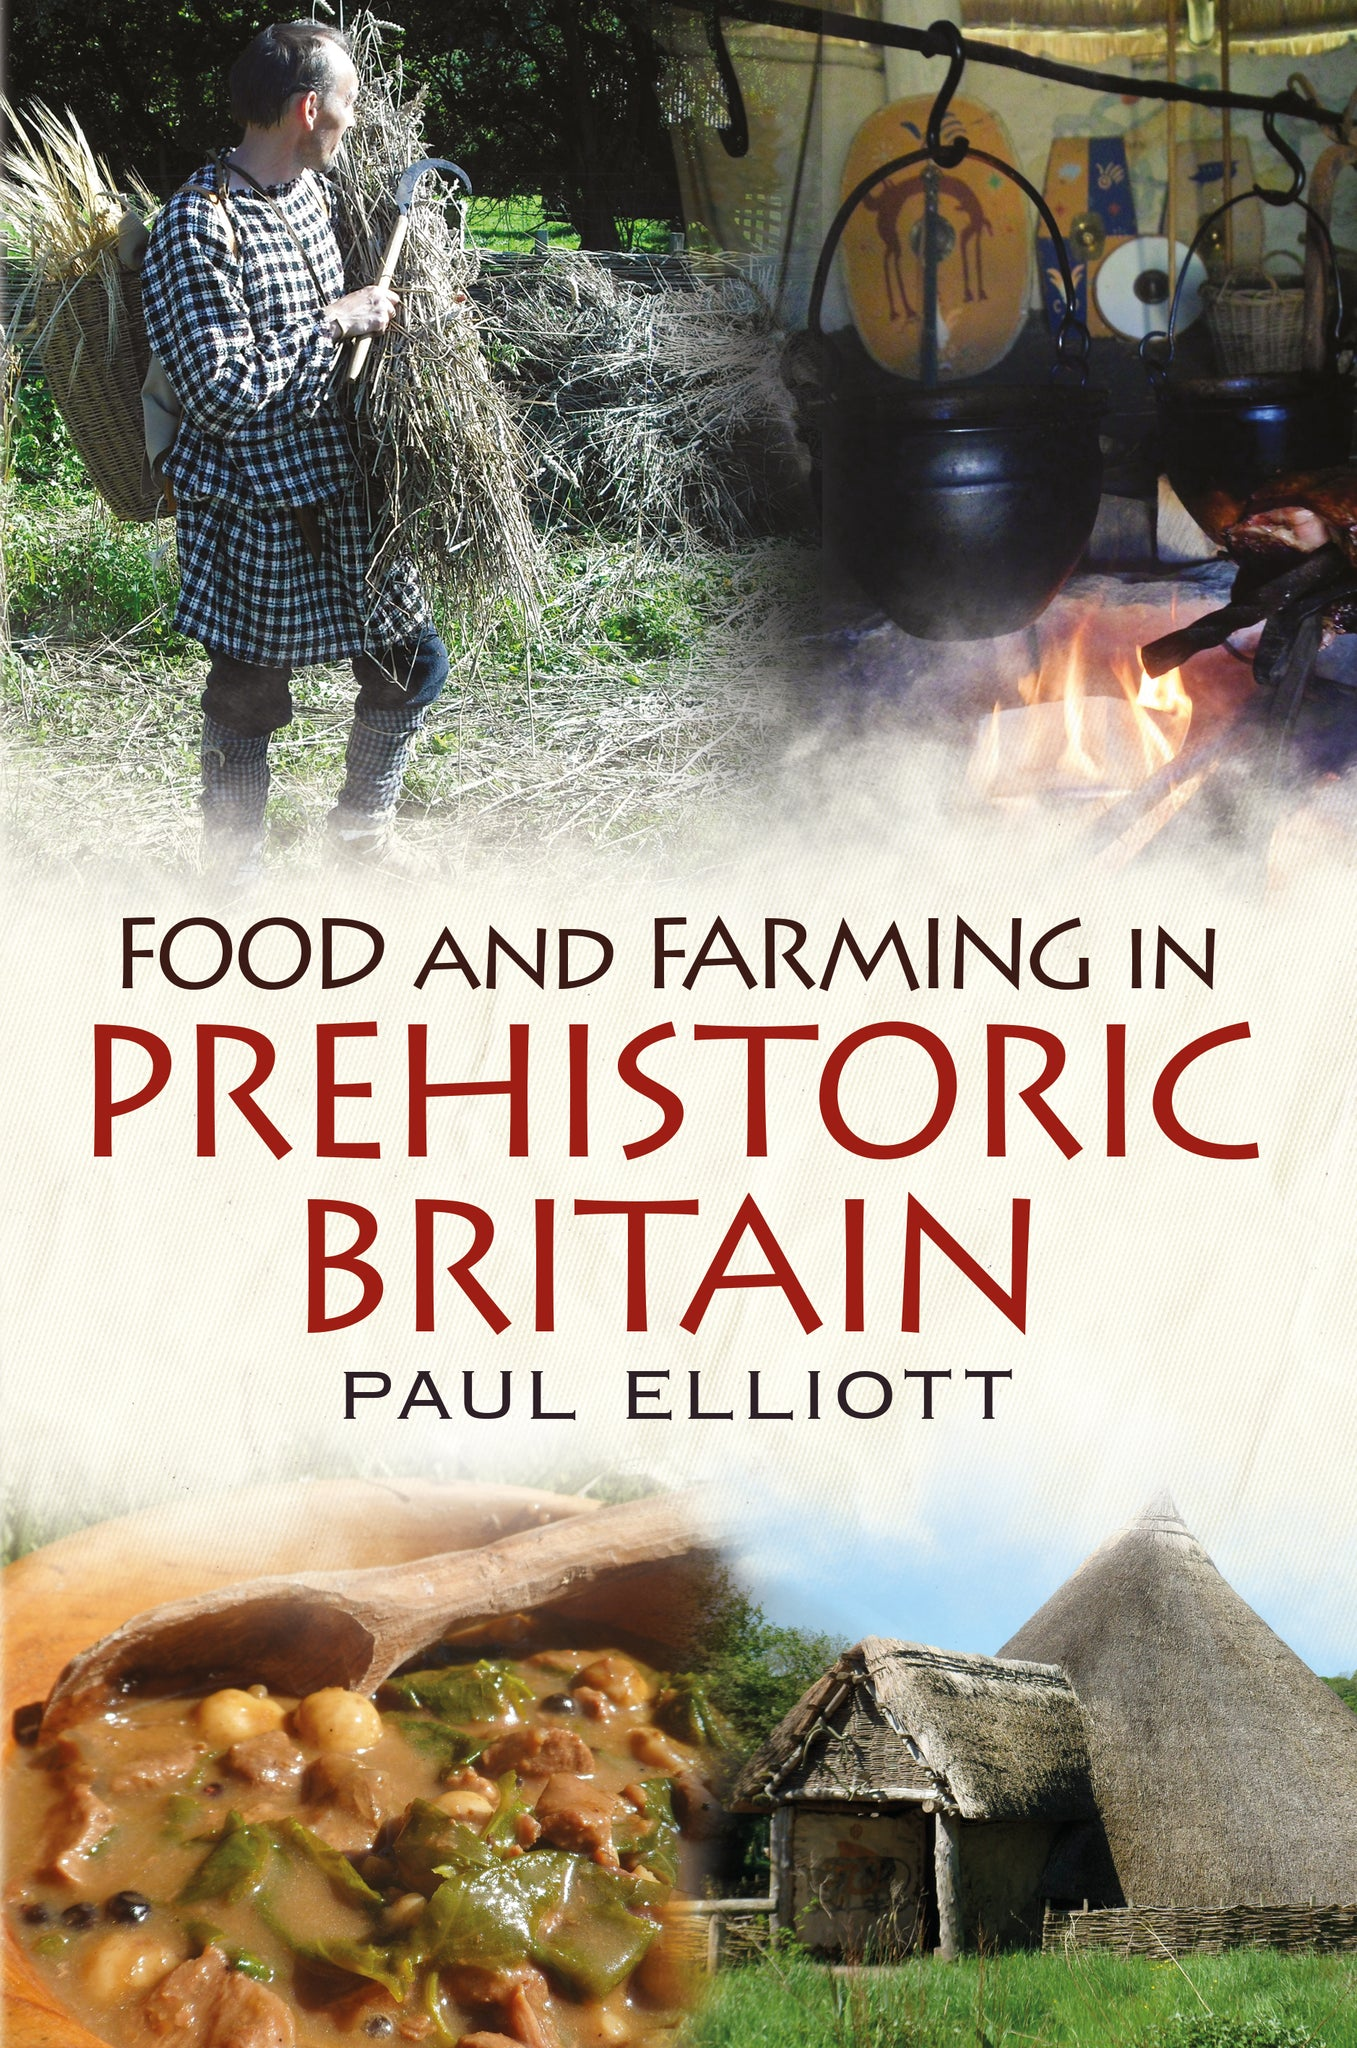 Food and Farming in Prehistoric Britain